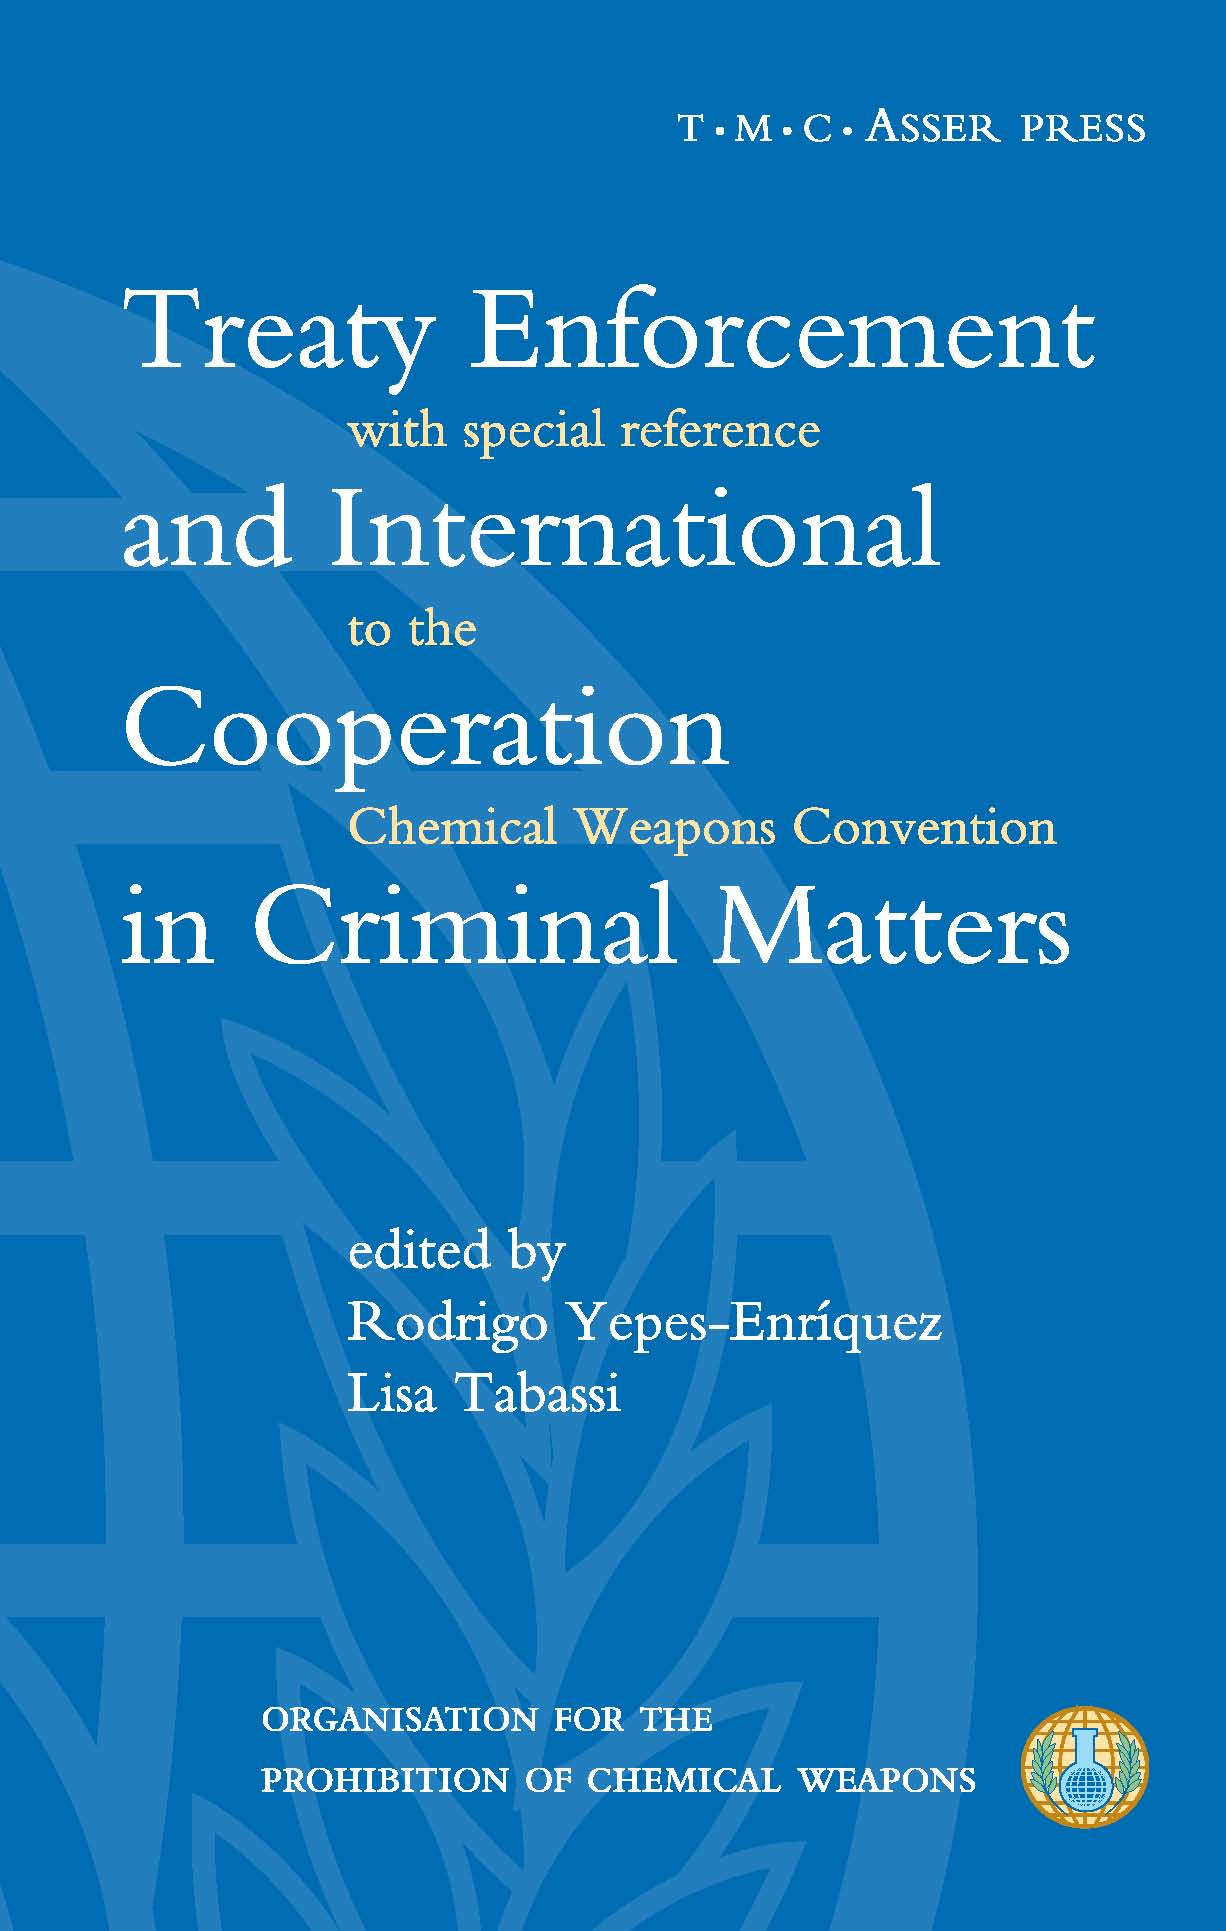 Treaty Enforcement and International Cooperation in Criminal Matters - With Special Reference to the Chemical Weapons Convention